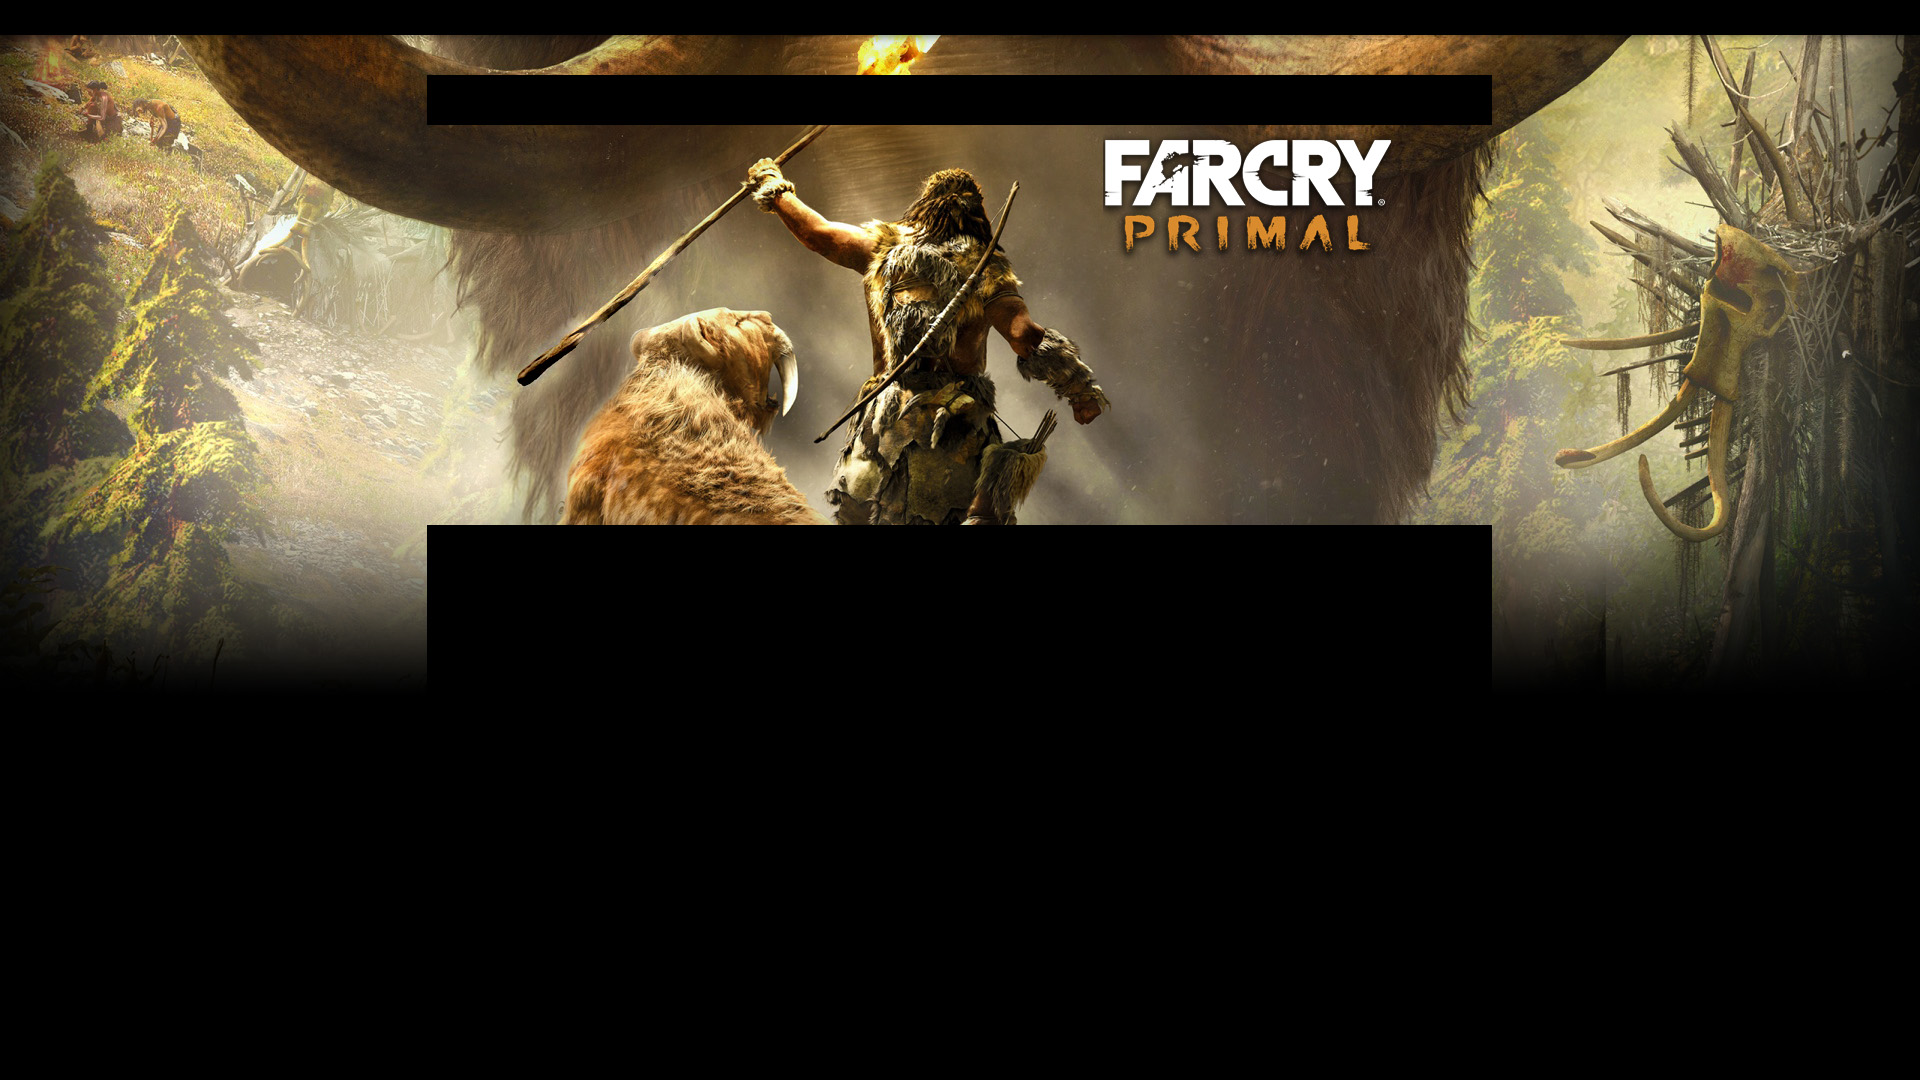 FAR CRY Primal [PC] video game